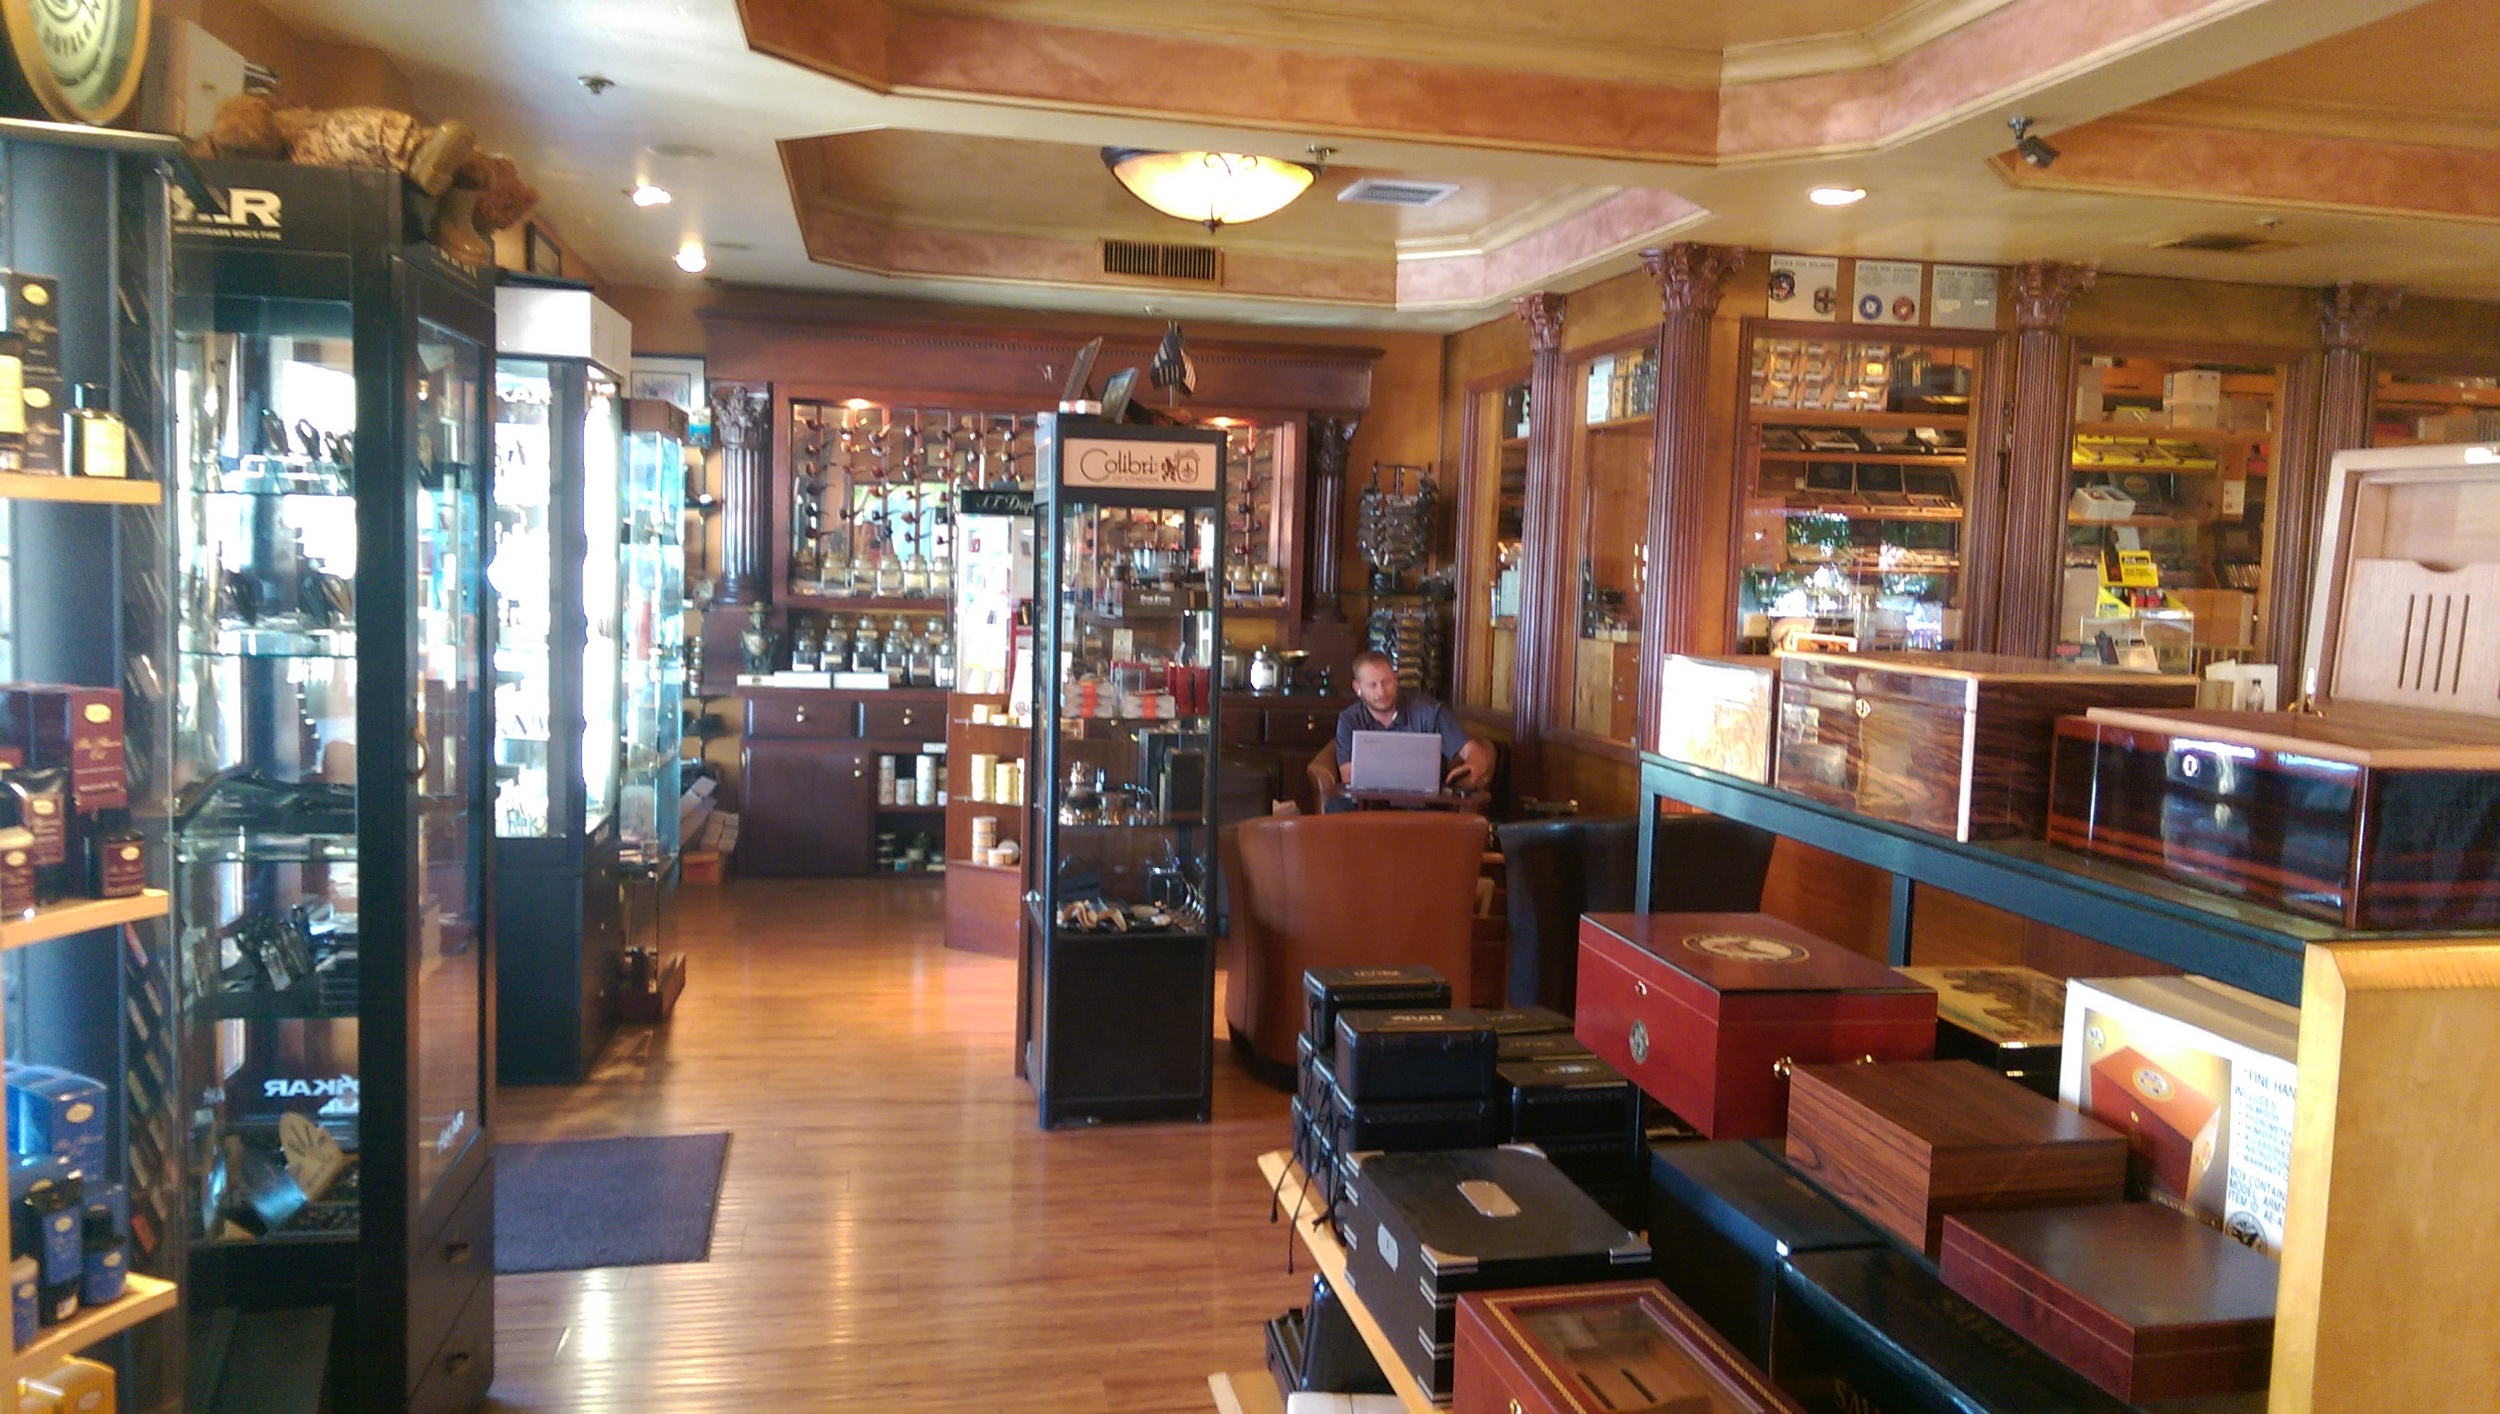 We stock a full line of Colibri Cutters and Lighters,  xikar lighters  and  Xikar cutters  as well as  Diomond Crown humidors  and  Brizzard and Co.cigar accessories .  Come in and check out your new favorite place to hang out!